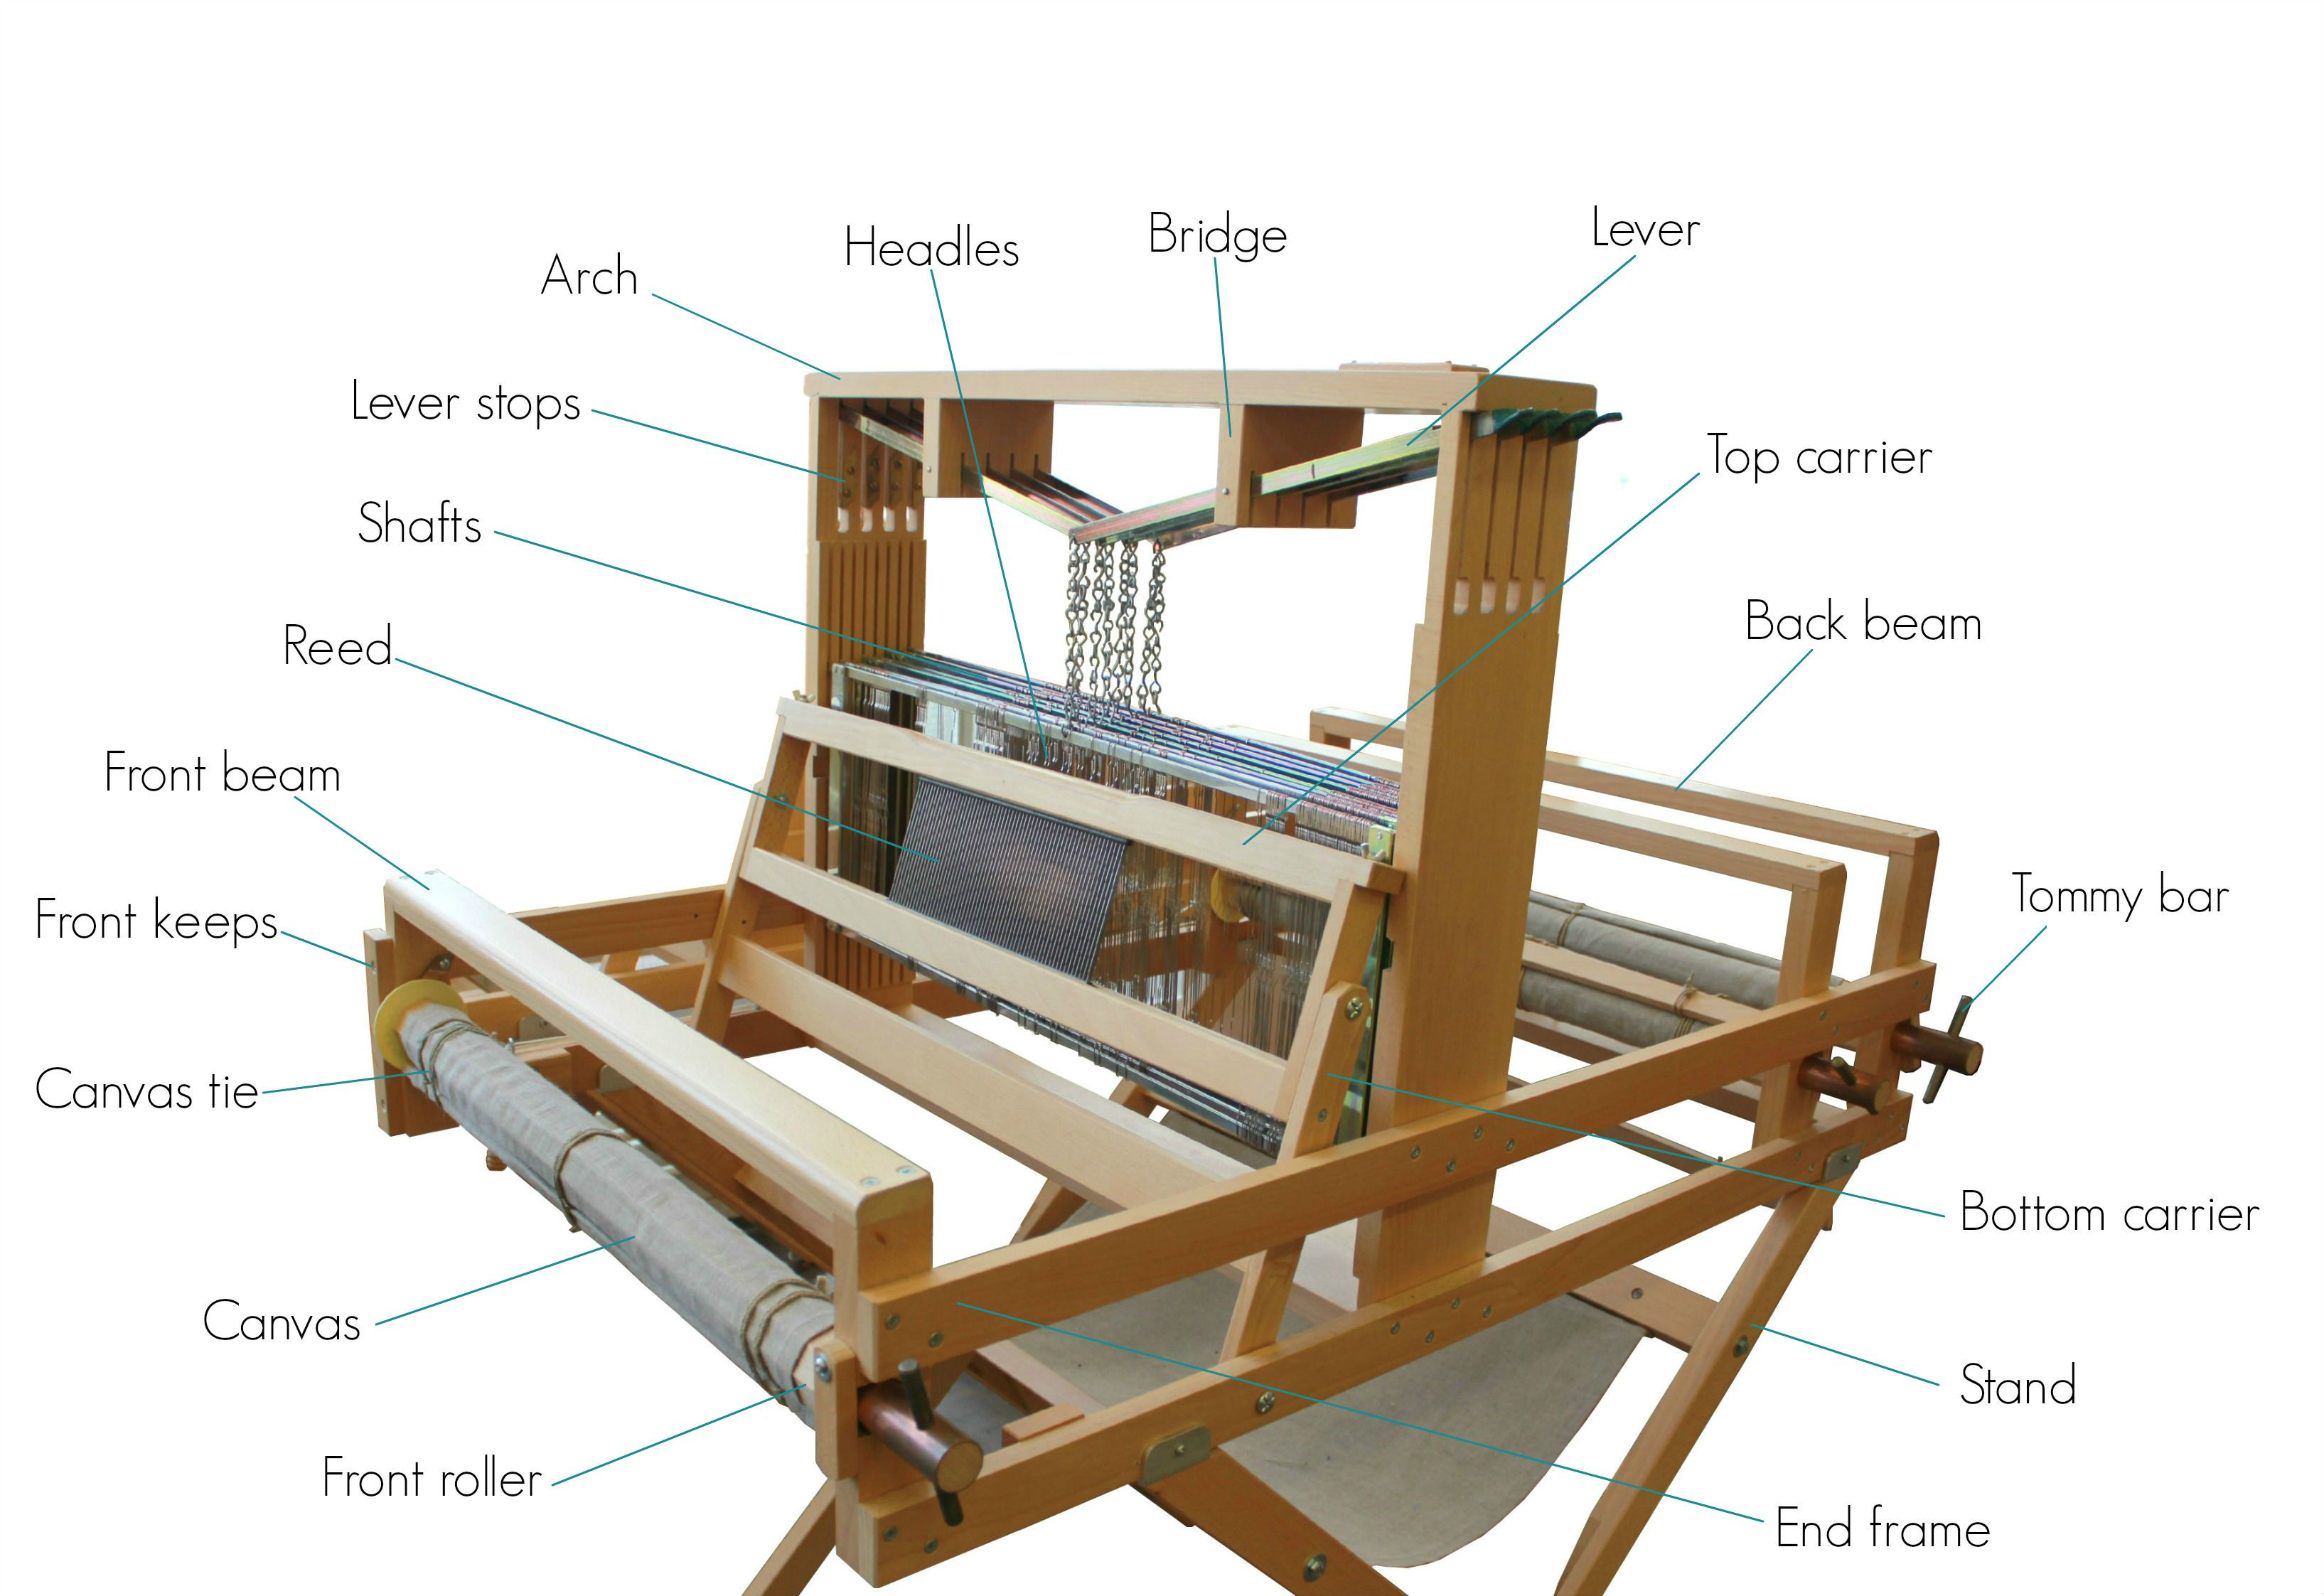 Diagram Of Weaving Loom Yamaha Blaster Wiring Emir  Wooden Workbench And Hand Tools Manfucturer